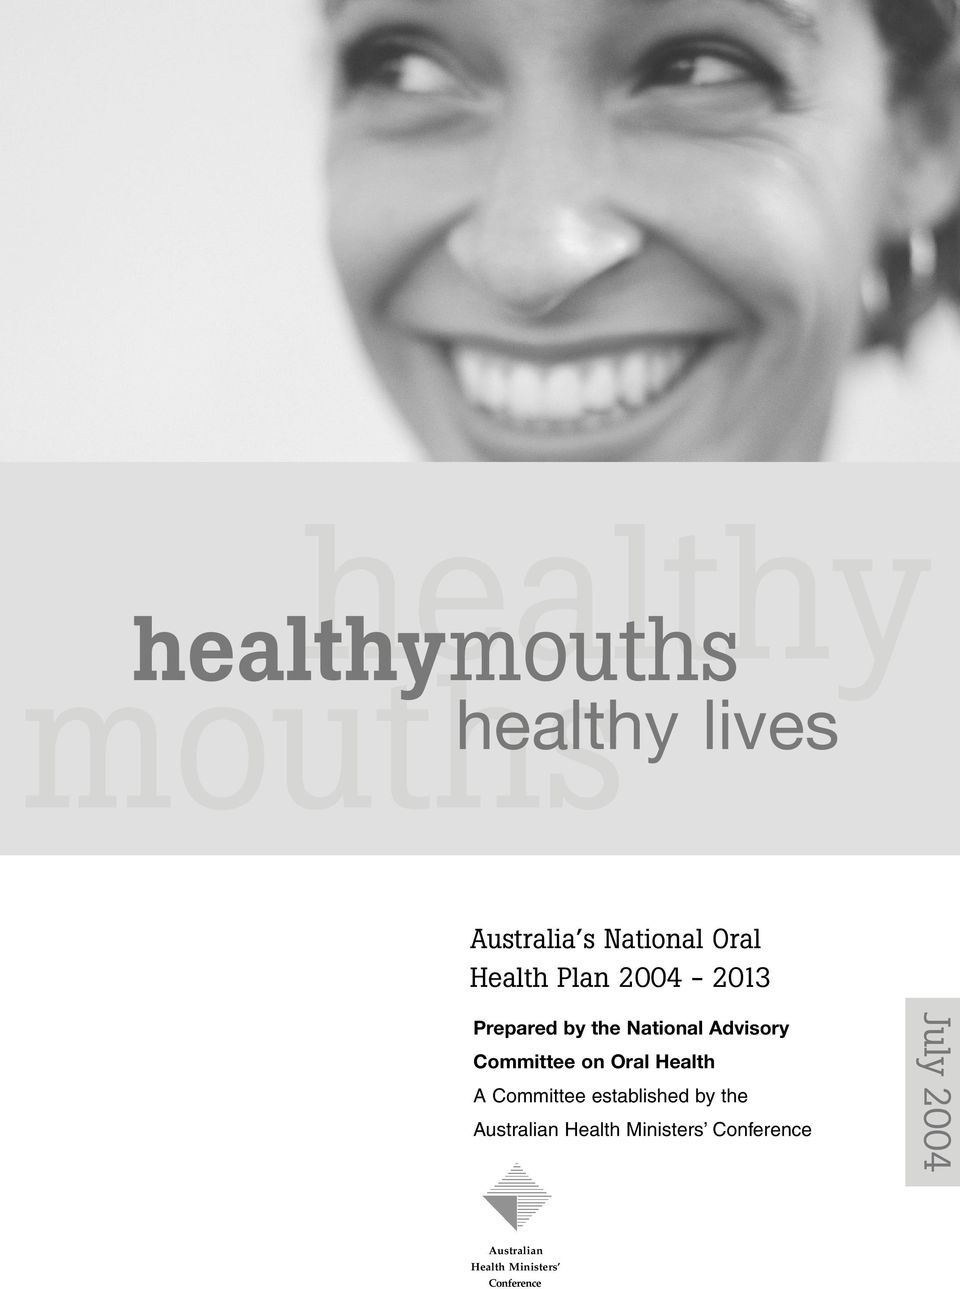 Committee on Oral Health A Committee established by the Australian